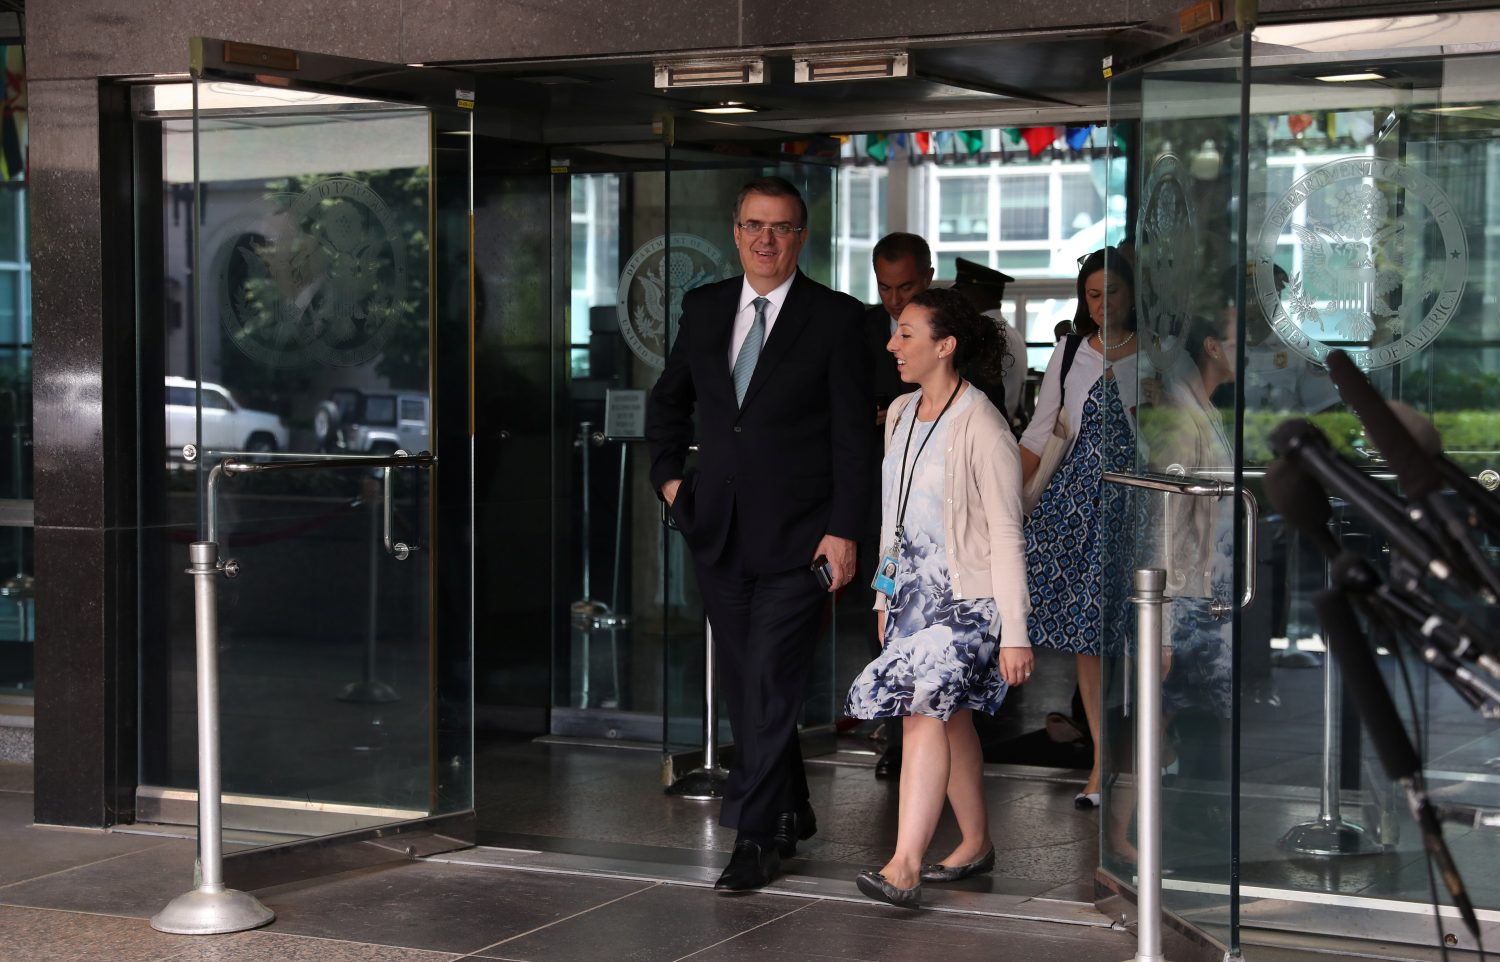 Mexico's Foreign Minister Marcelo Ebrard exits the U.S. State Department to speak to reporters after a meeting between U.S. and Mexican officials on immigration and trade in Washington, U.S., June 6, 2019. REUTERS/Leah Millis